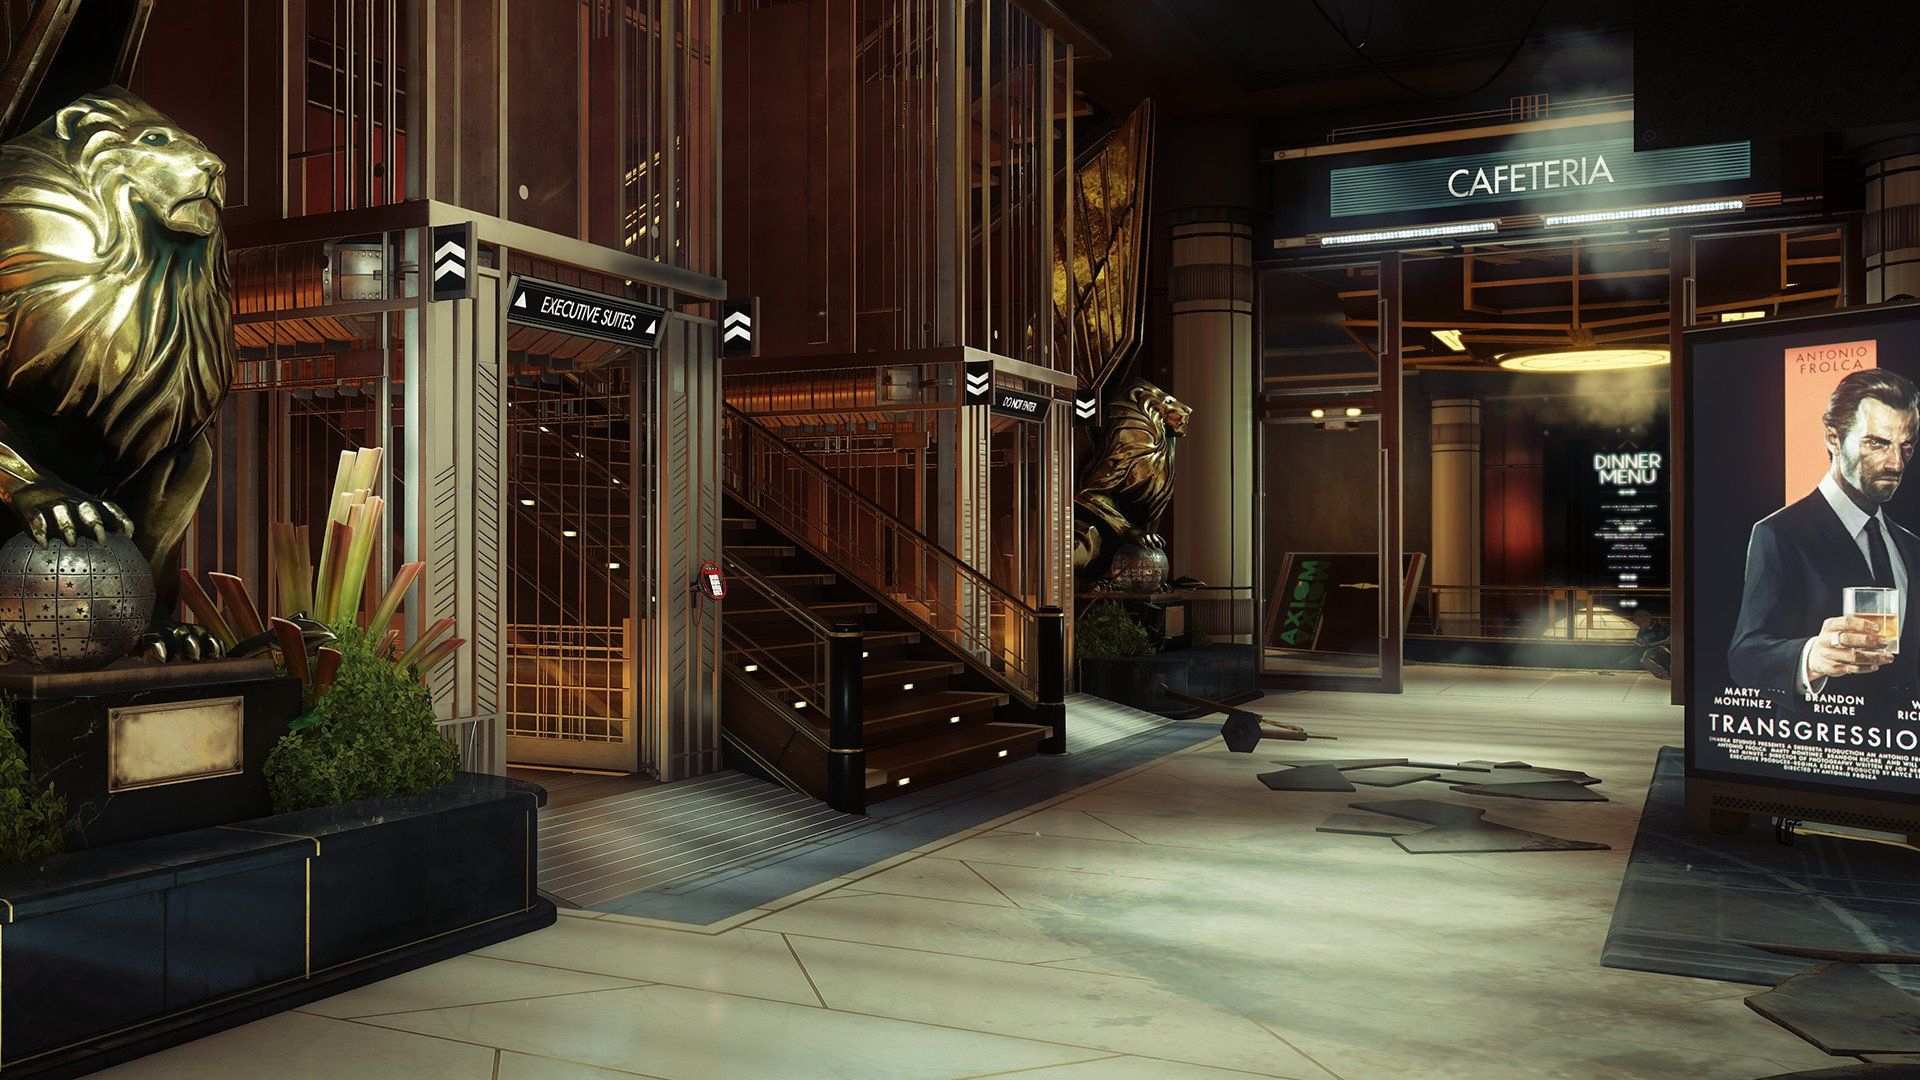 Prey's Talos I space station brings to mind some very good